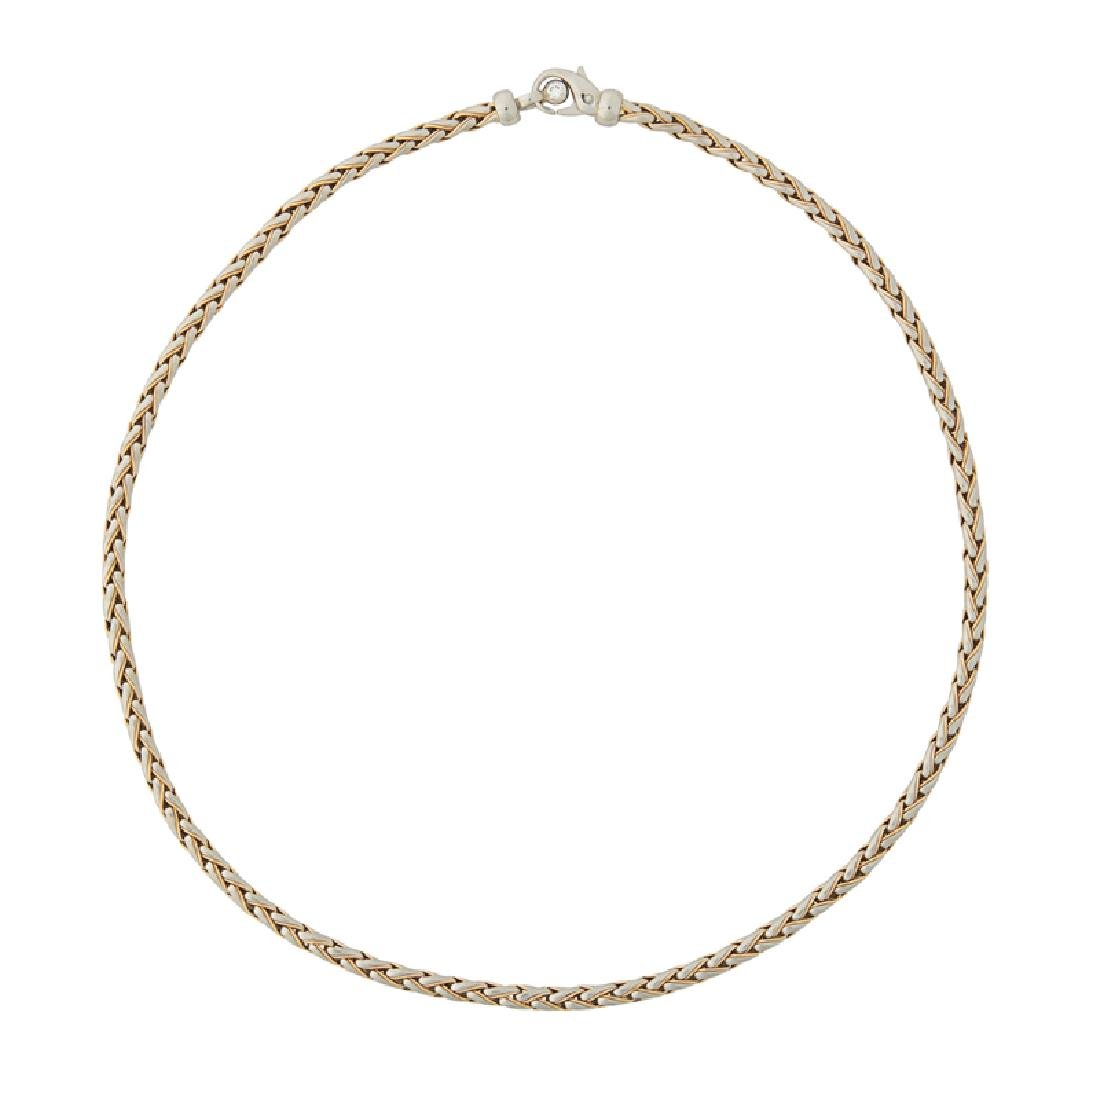 PLATINUM & YELLOW GOLD CHAIN NECKLACE